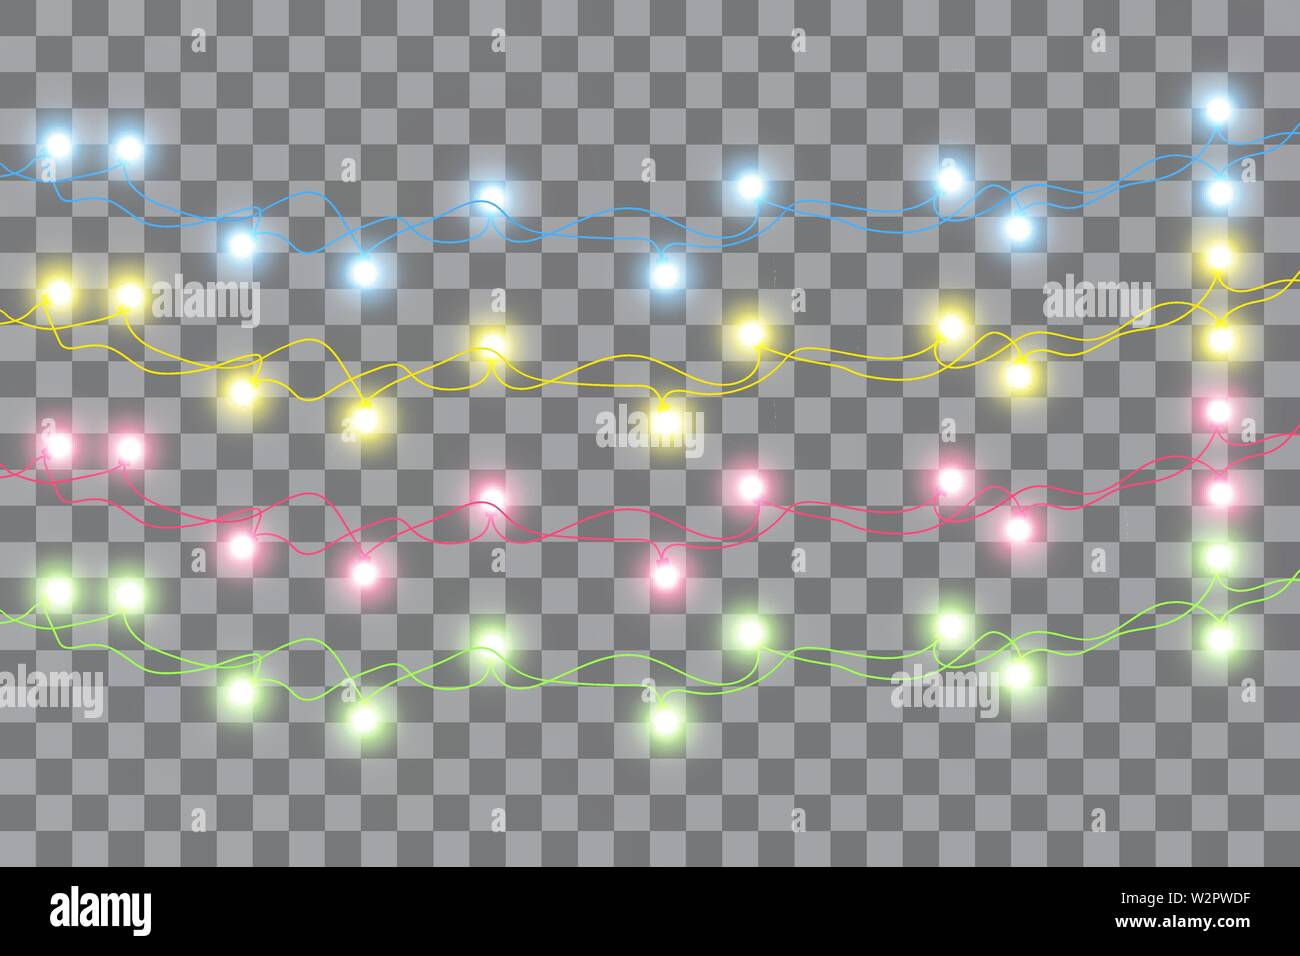 Weihnachtsbeleuchtung Glühlampen.Colorful Green Glowing Christmas Lights Vector Stockfotos Colorful